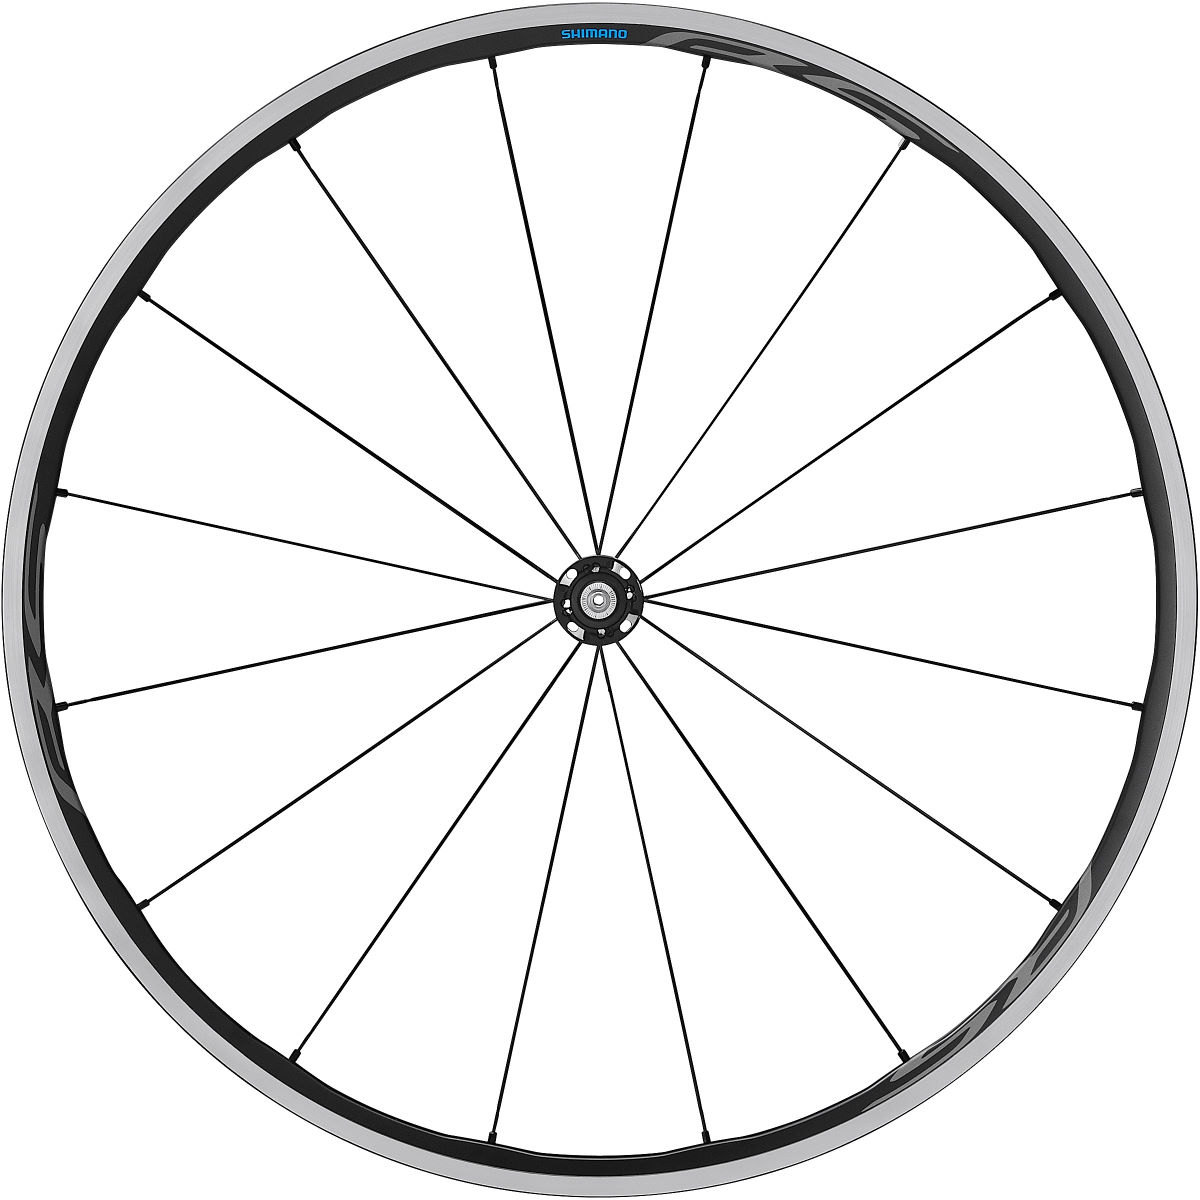 Shimano Ultegra RS700 C30 Clincher Front Wheel   Performance Wheels